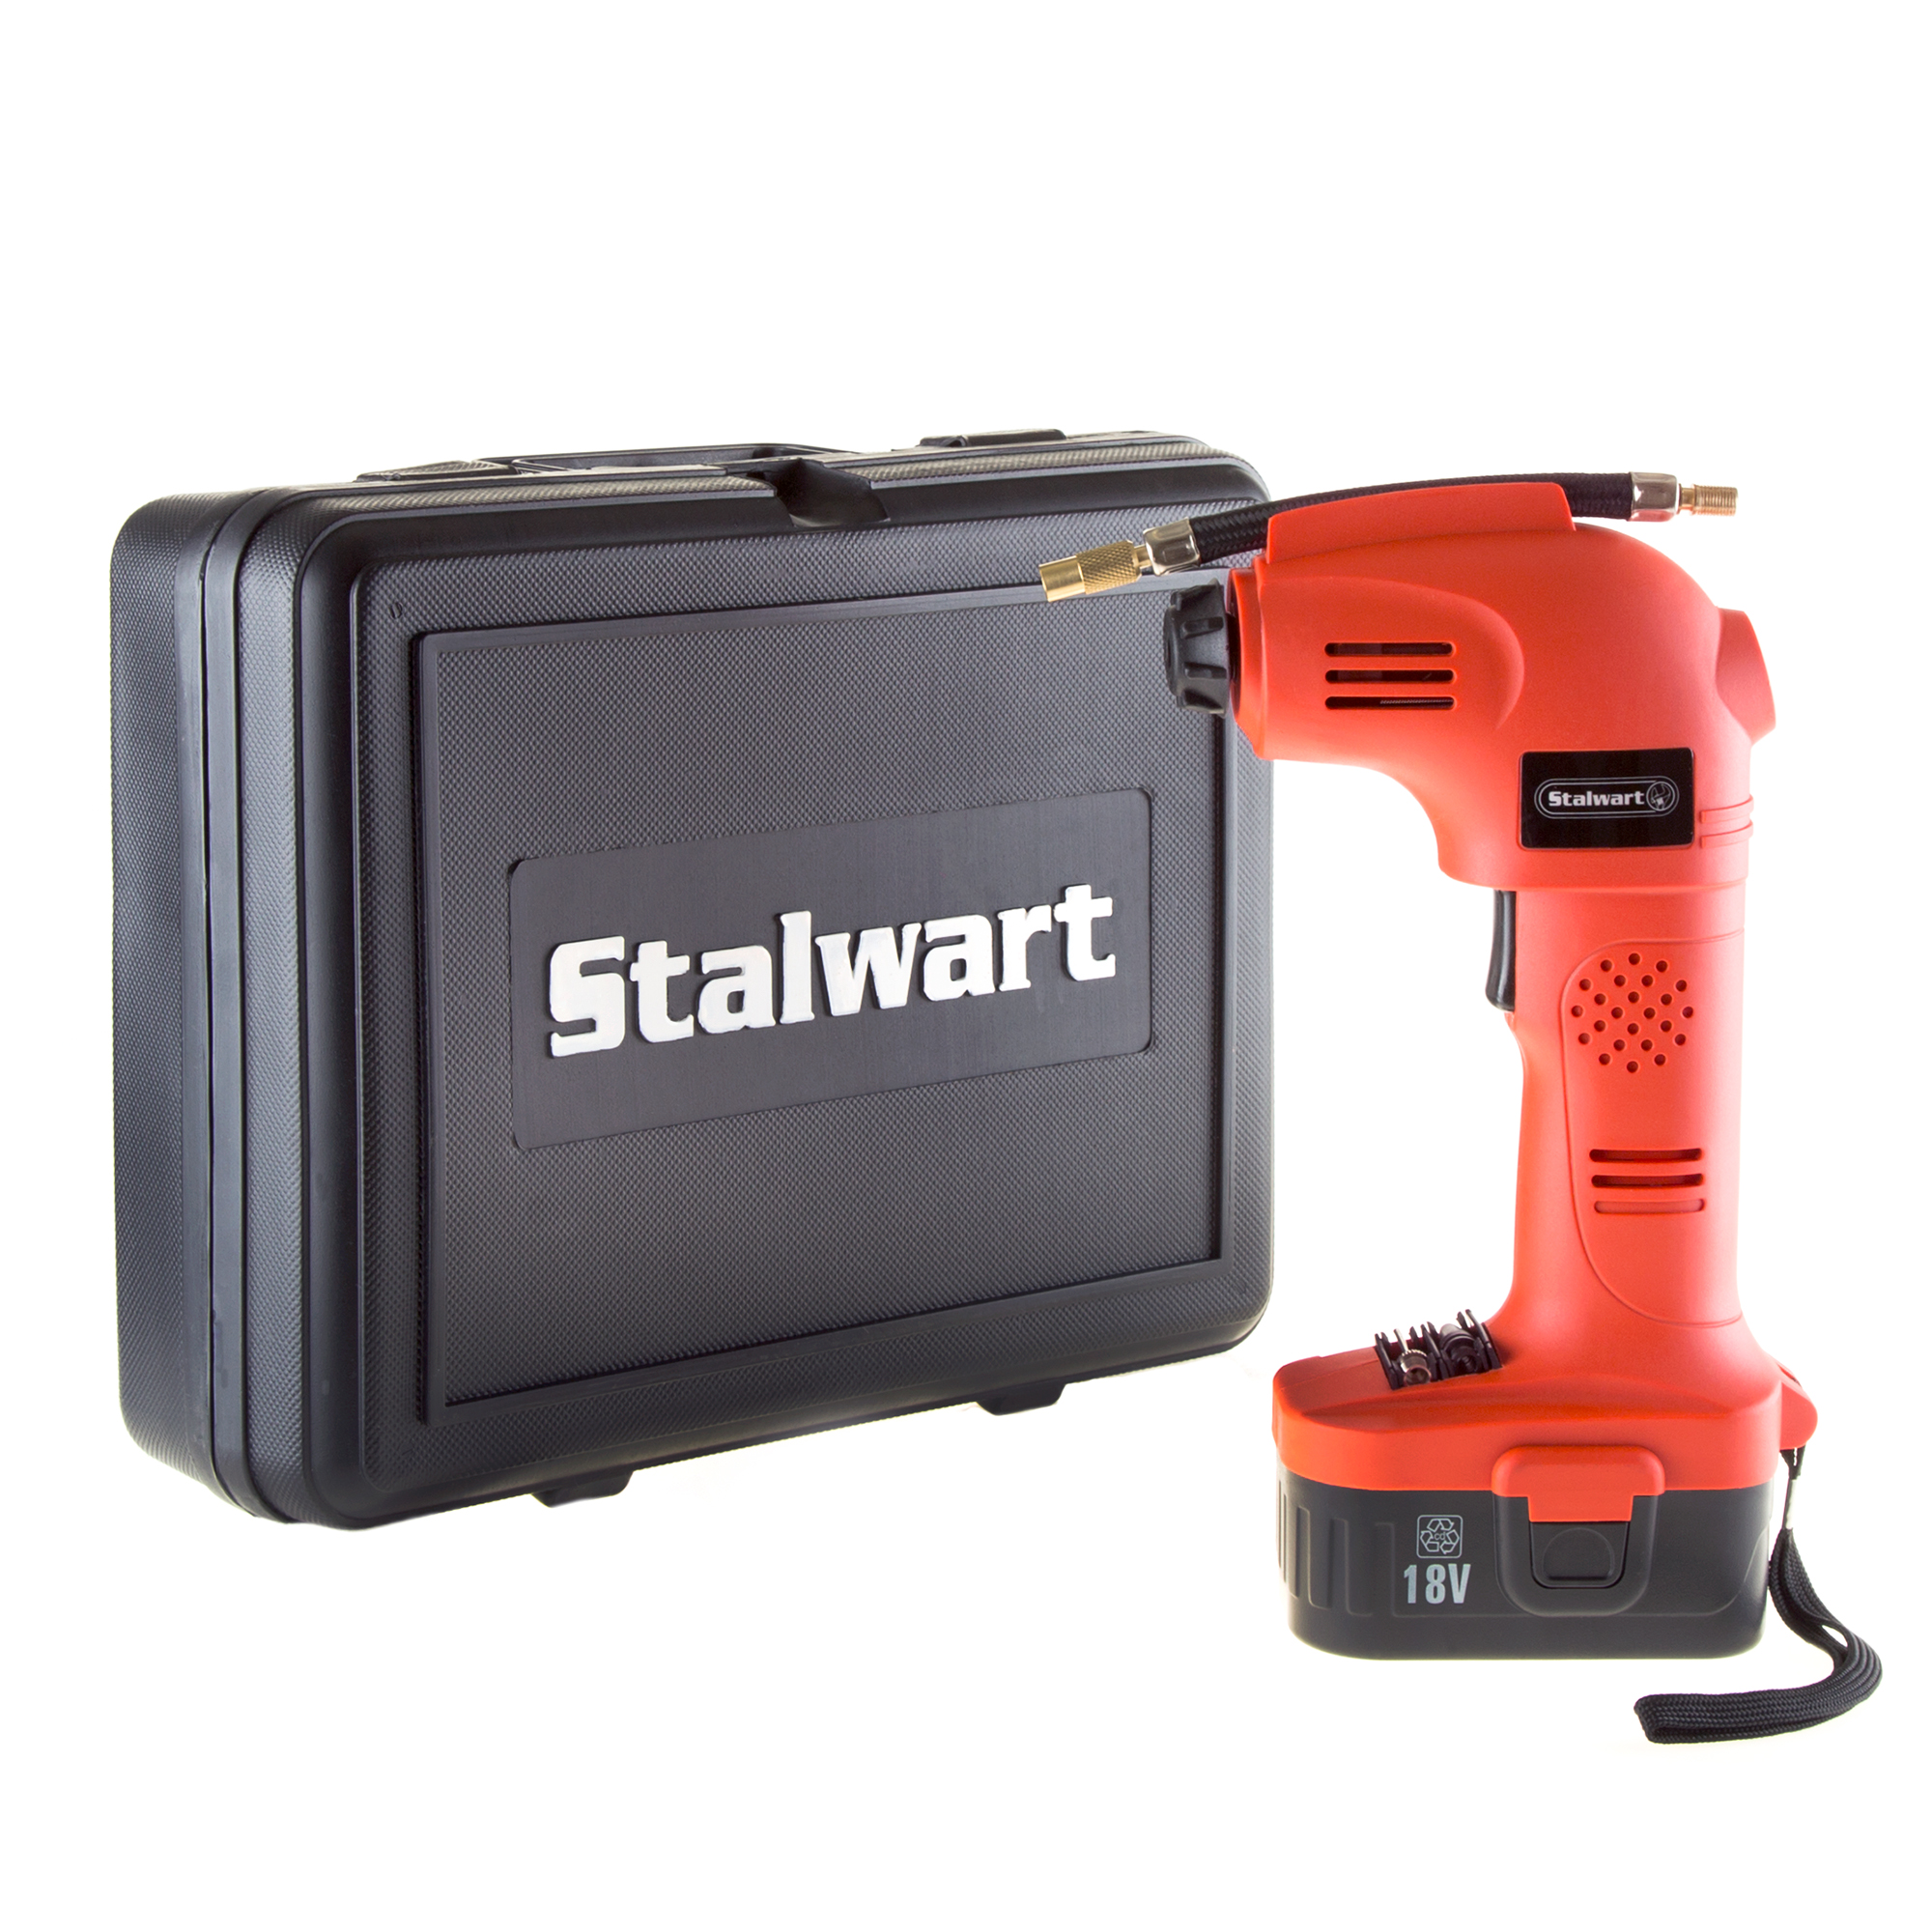 Cordless Air Compressor Portable Tire Inflator Rechargeable Handheld Emergency PSI/BAR Pump With Needles and Hose for Car Truck RV by Stalwart (18V)